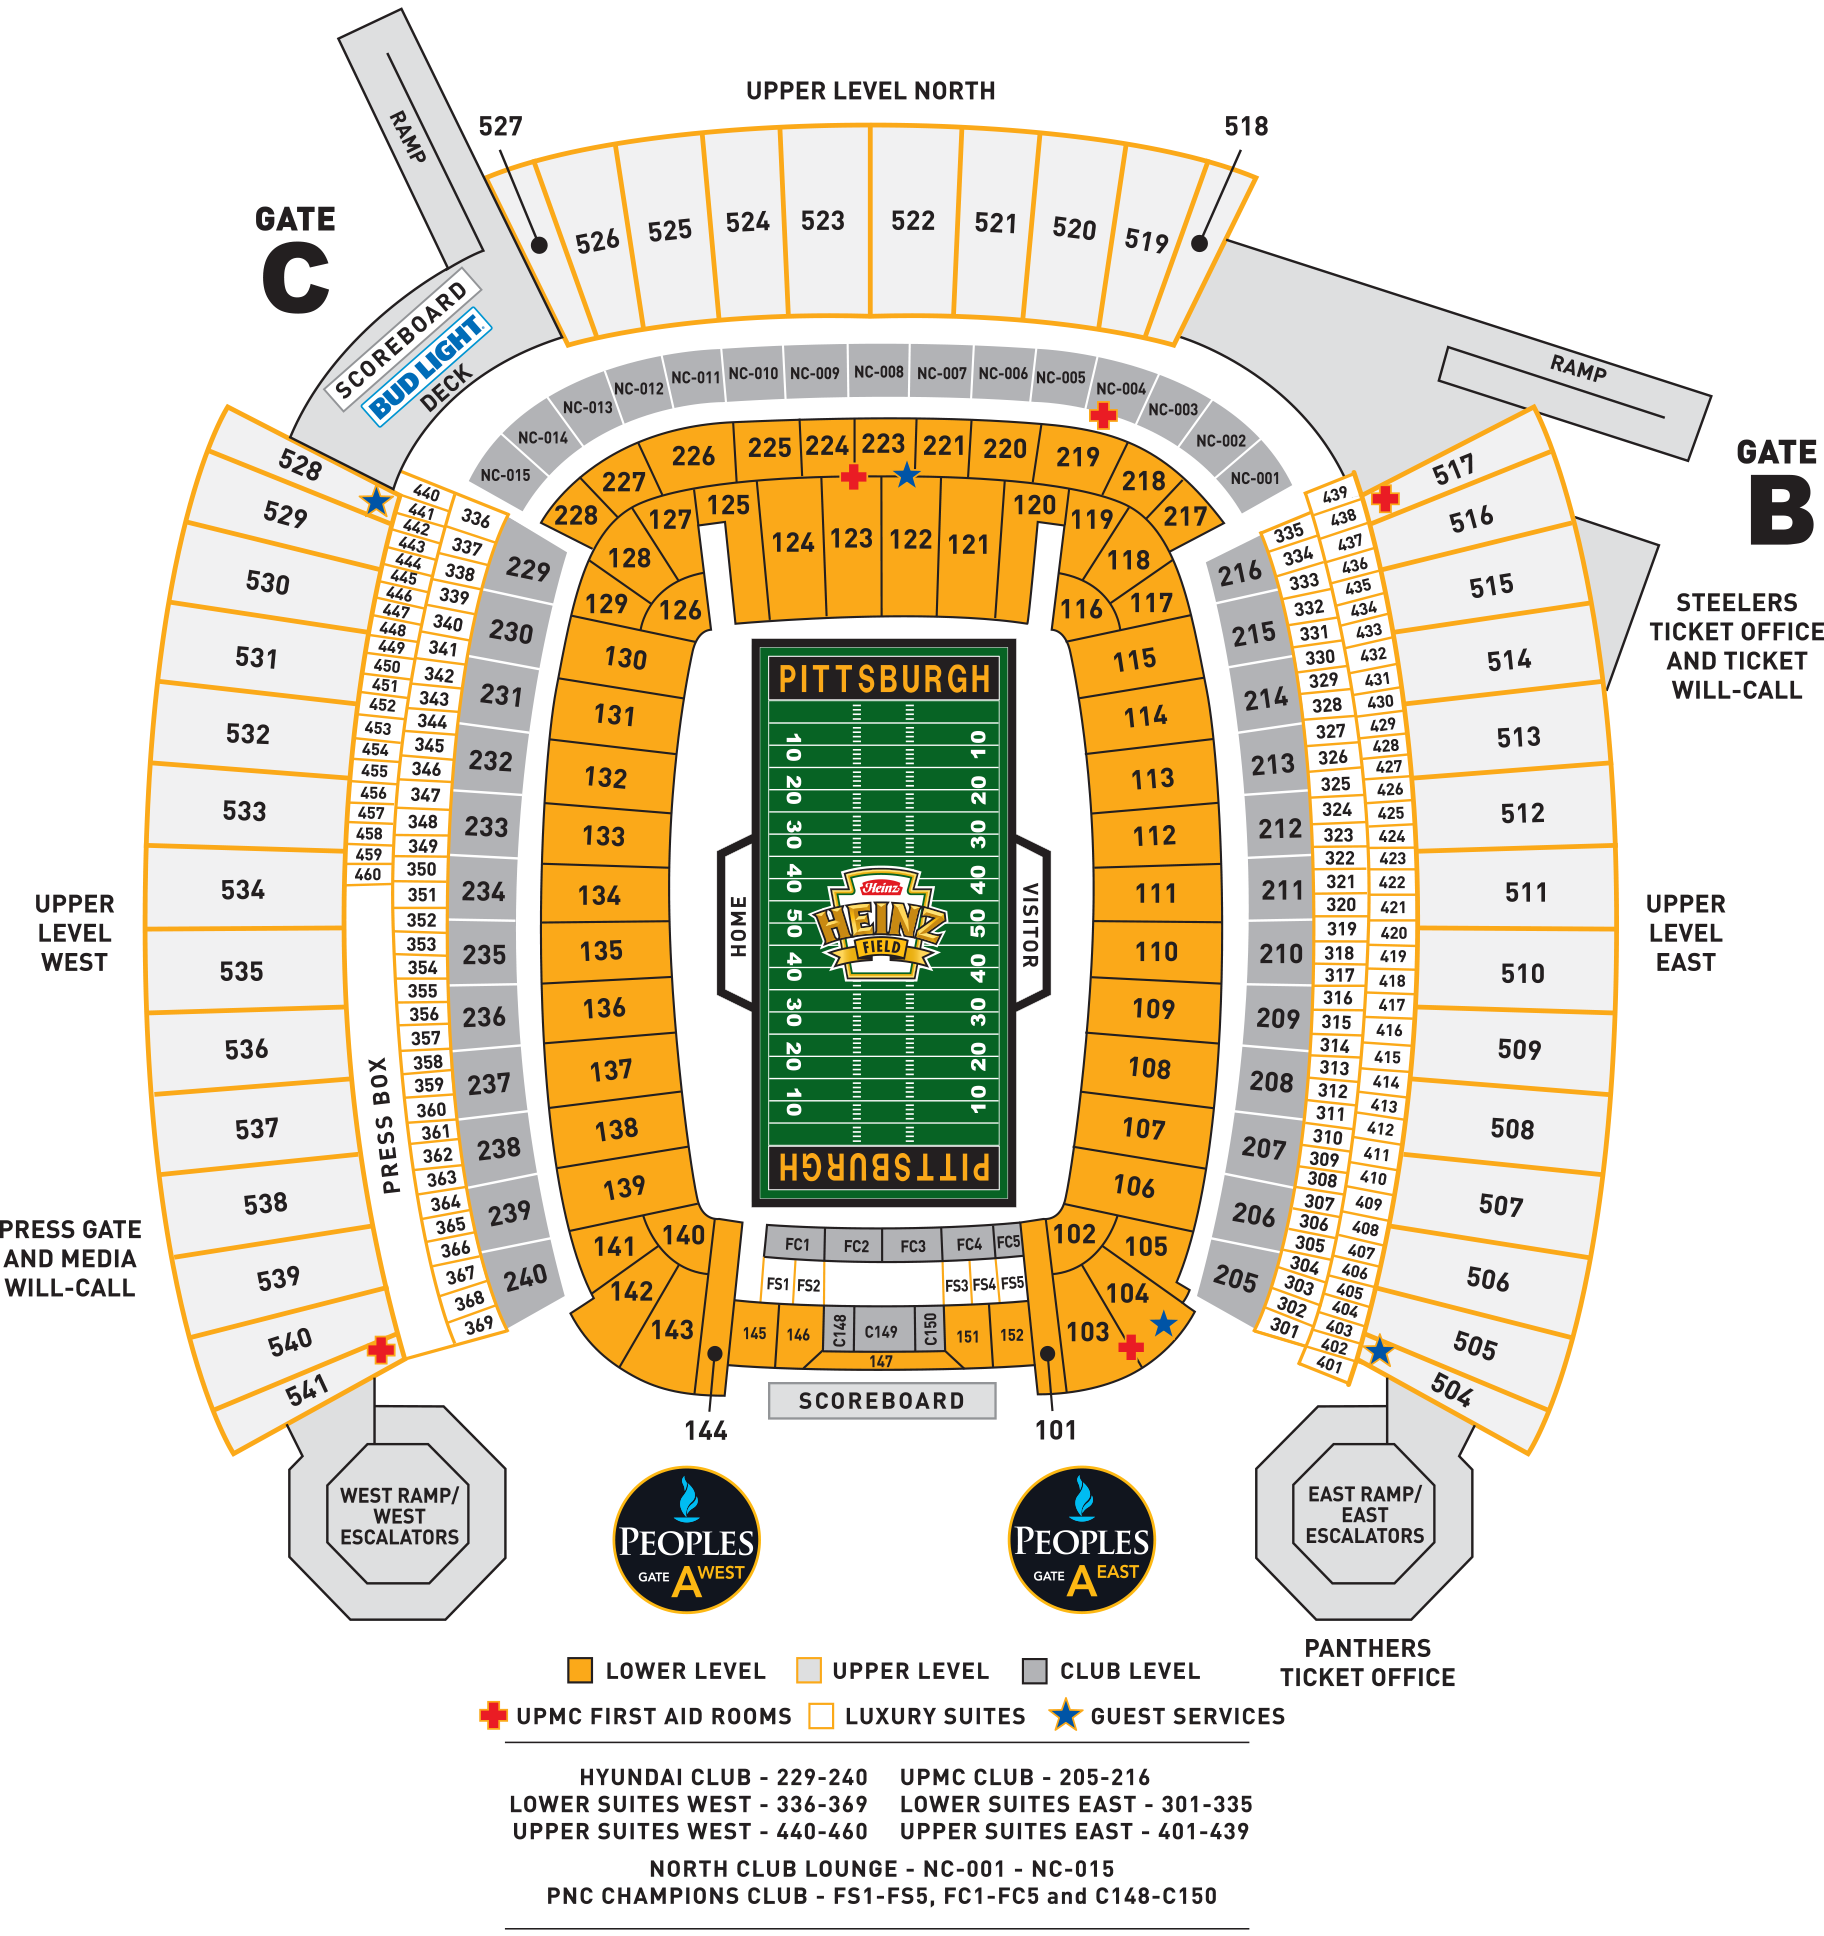 Heinz Field Seat Map Heinz Field Seating Charts and Stadium Diagrams Heinz Field Seat Map